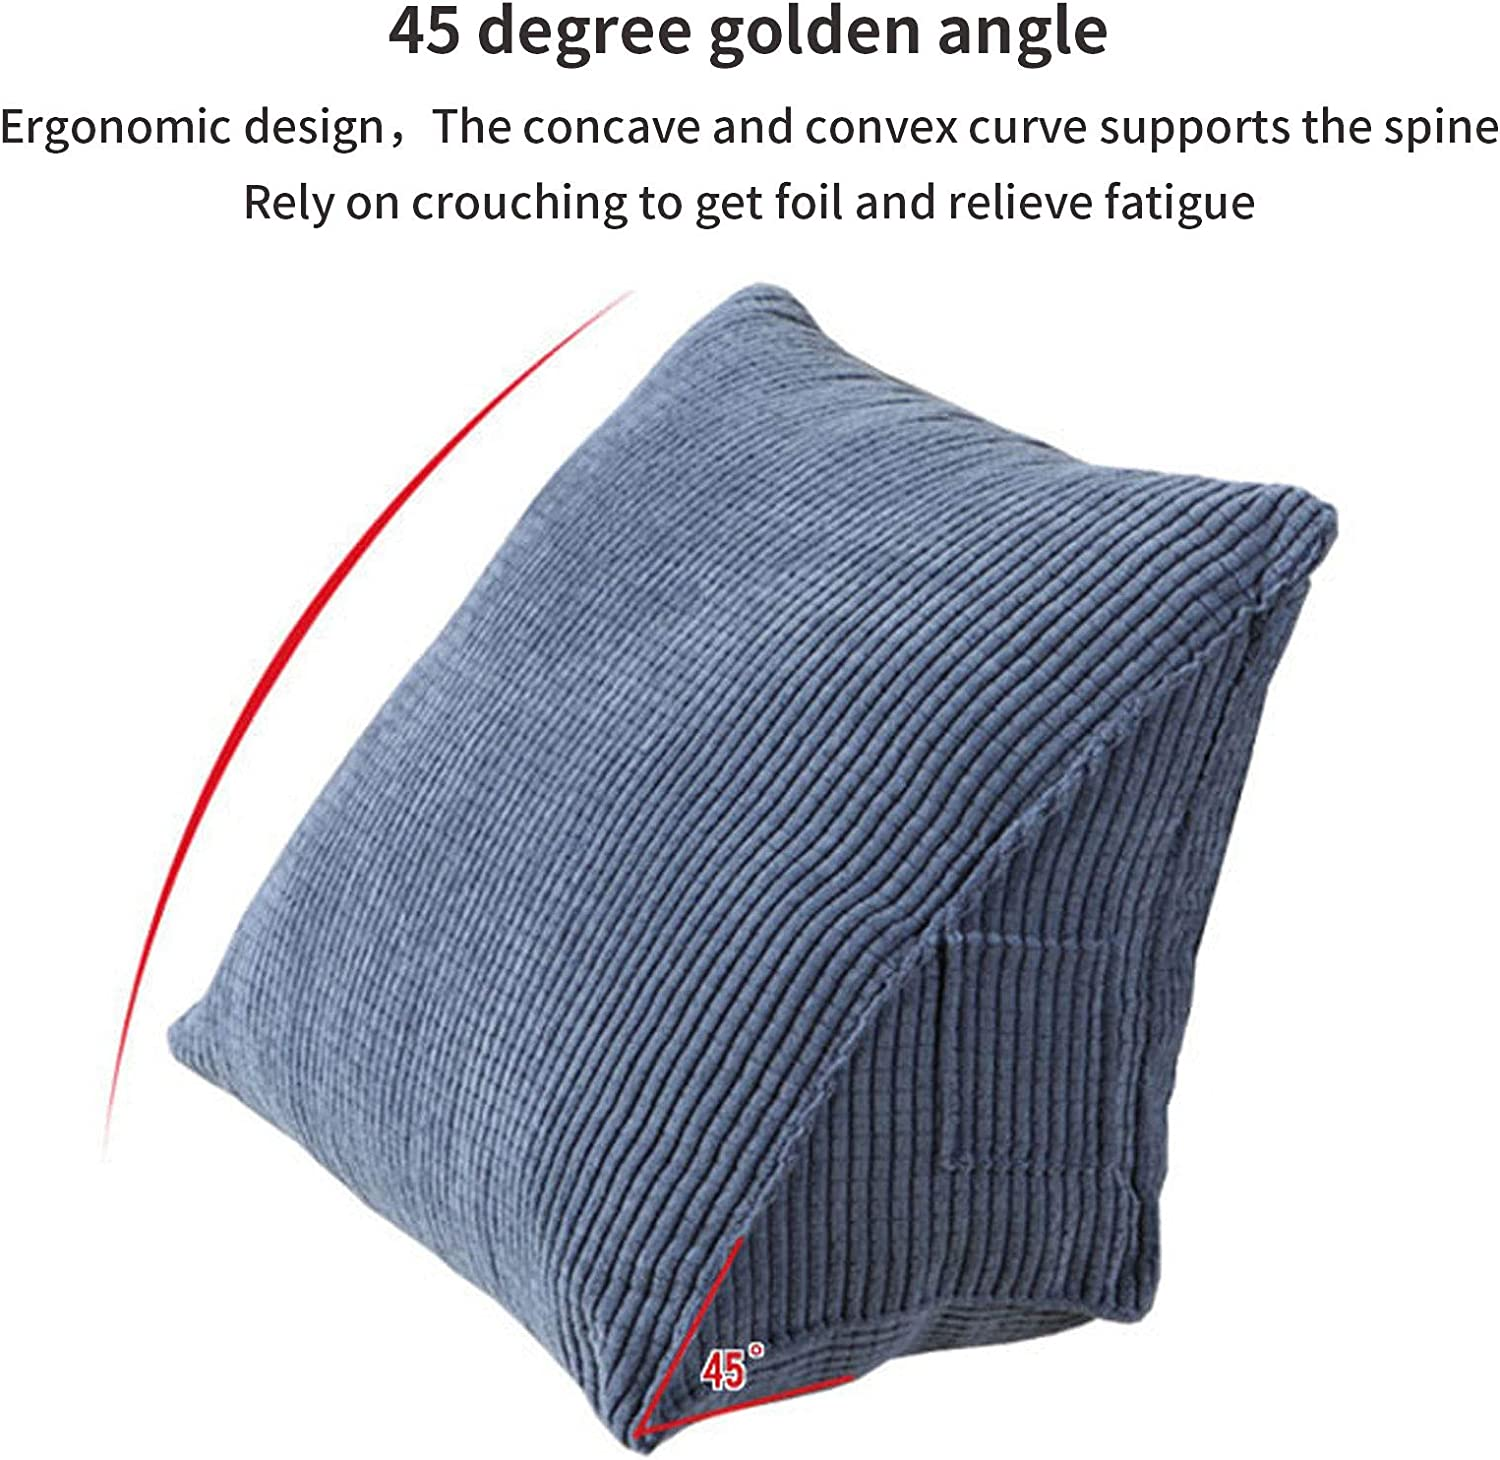 Nutteri Triangle Back Cushion Corduroy Wedge Soft Reading Pillow Backrest Positioning Support Pillows for Office Home Bed Sofa Chair (Coffee, 15.7×14.2×7.9 inch): Kitchen & Dining